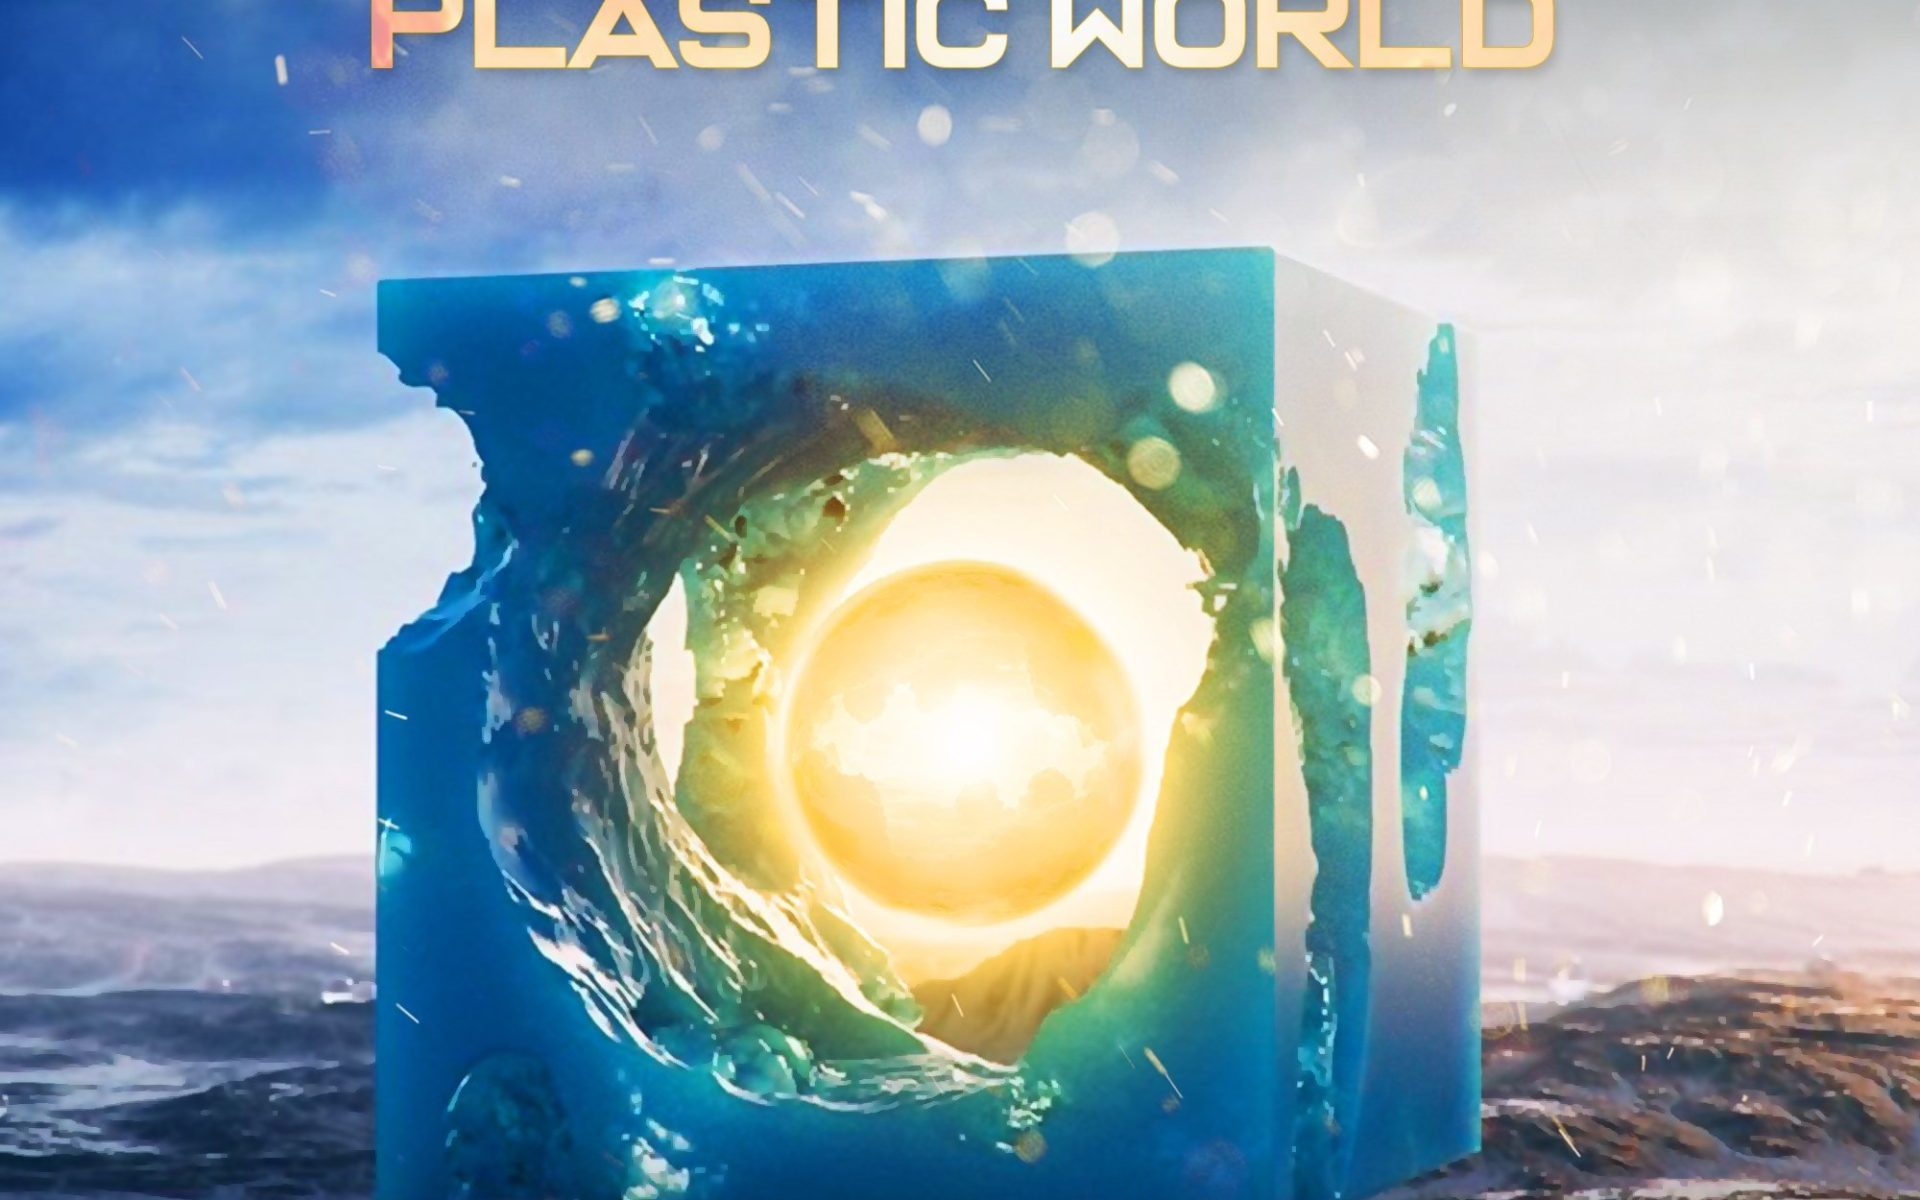 01-N - Plastic World